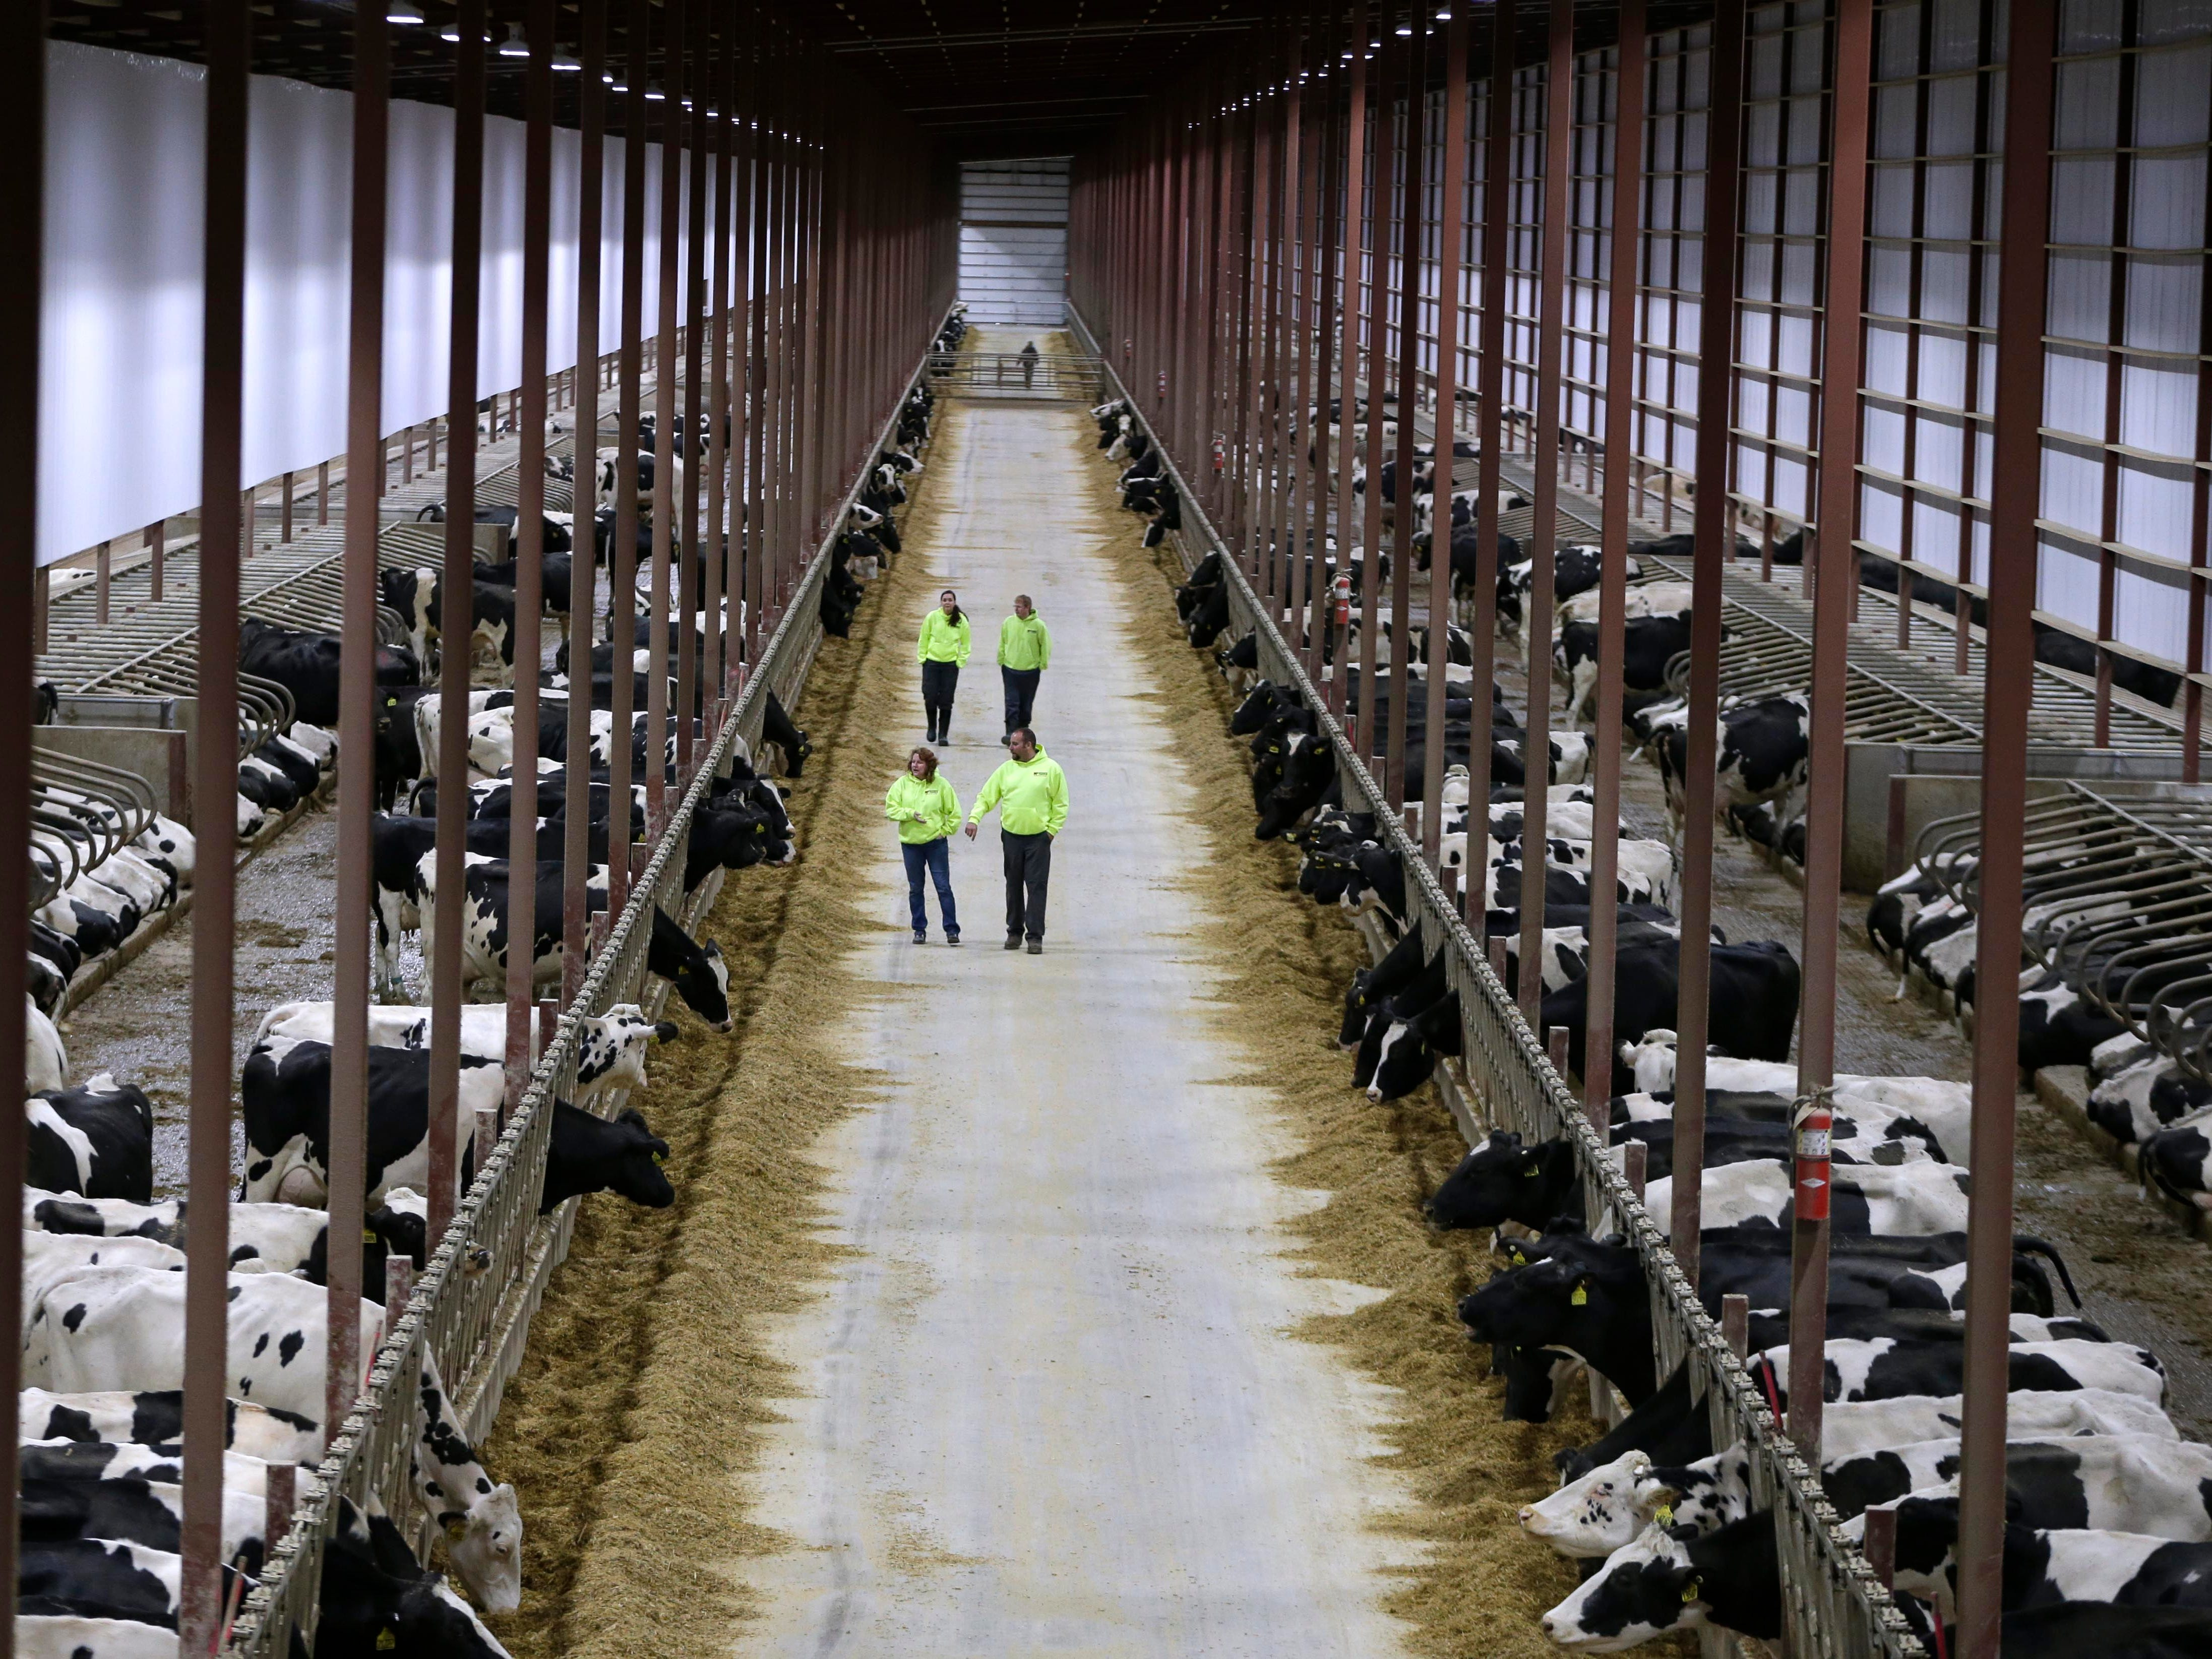 2017: CAFO (concentrated animal feeding operations) continue to grow. The Kinnard dairy farm operates long barns using a sand mixture for cow comfort and stability. Waste is collected in the center and dispersed to other farm lands throughout a 31-mile area. The farm milks more than 6,000 dairy cattle. Large-scale operations have been contributing to the demise of family farms across Wisconsin.